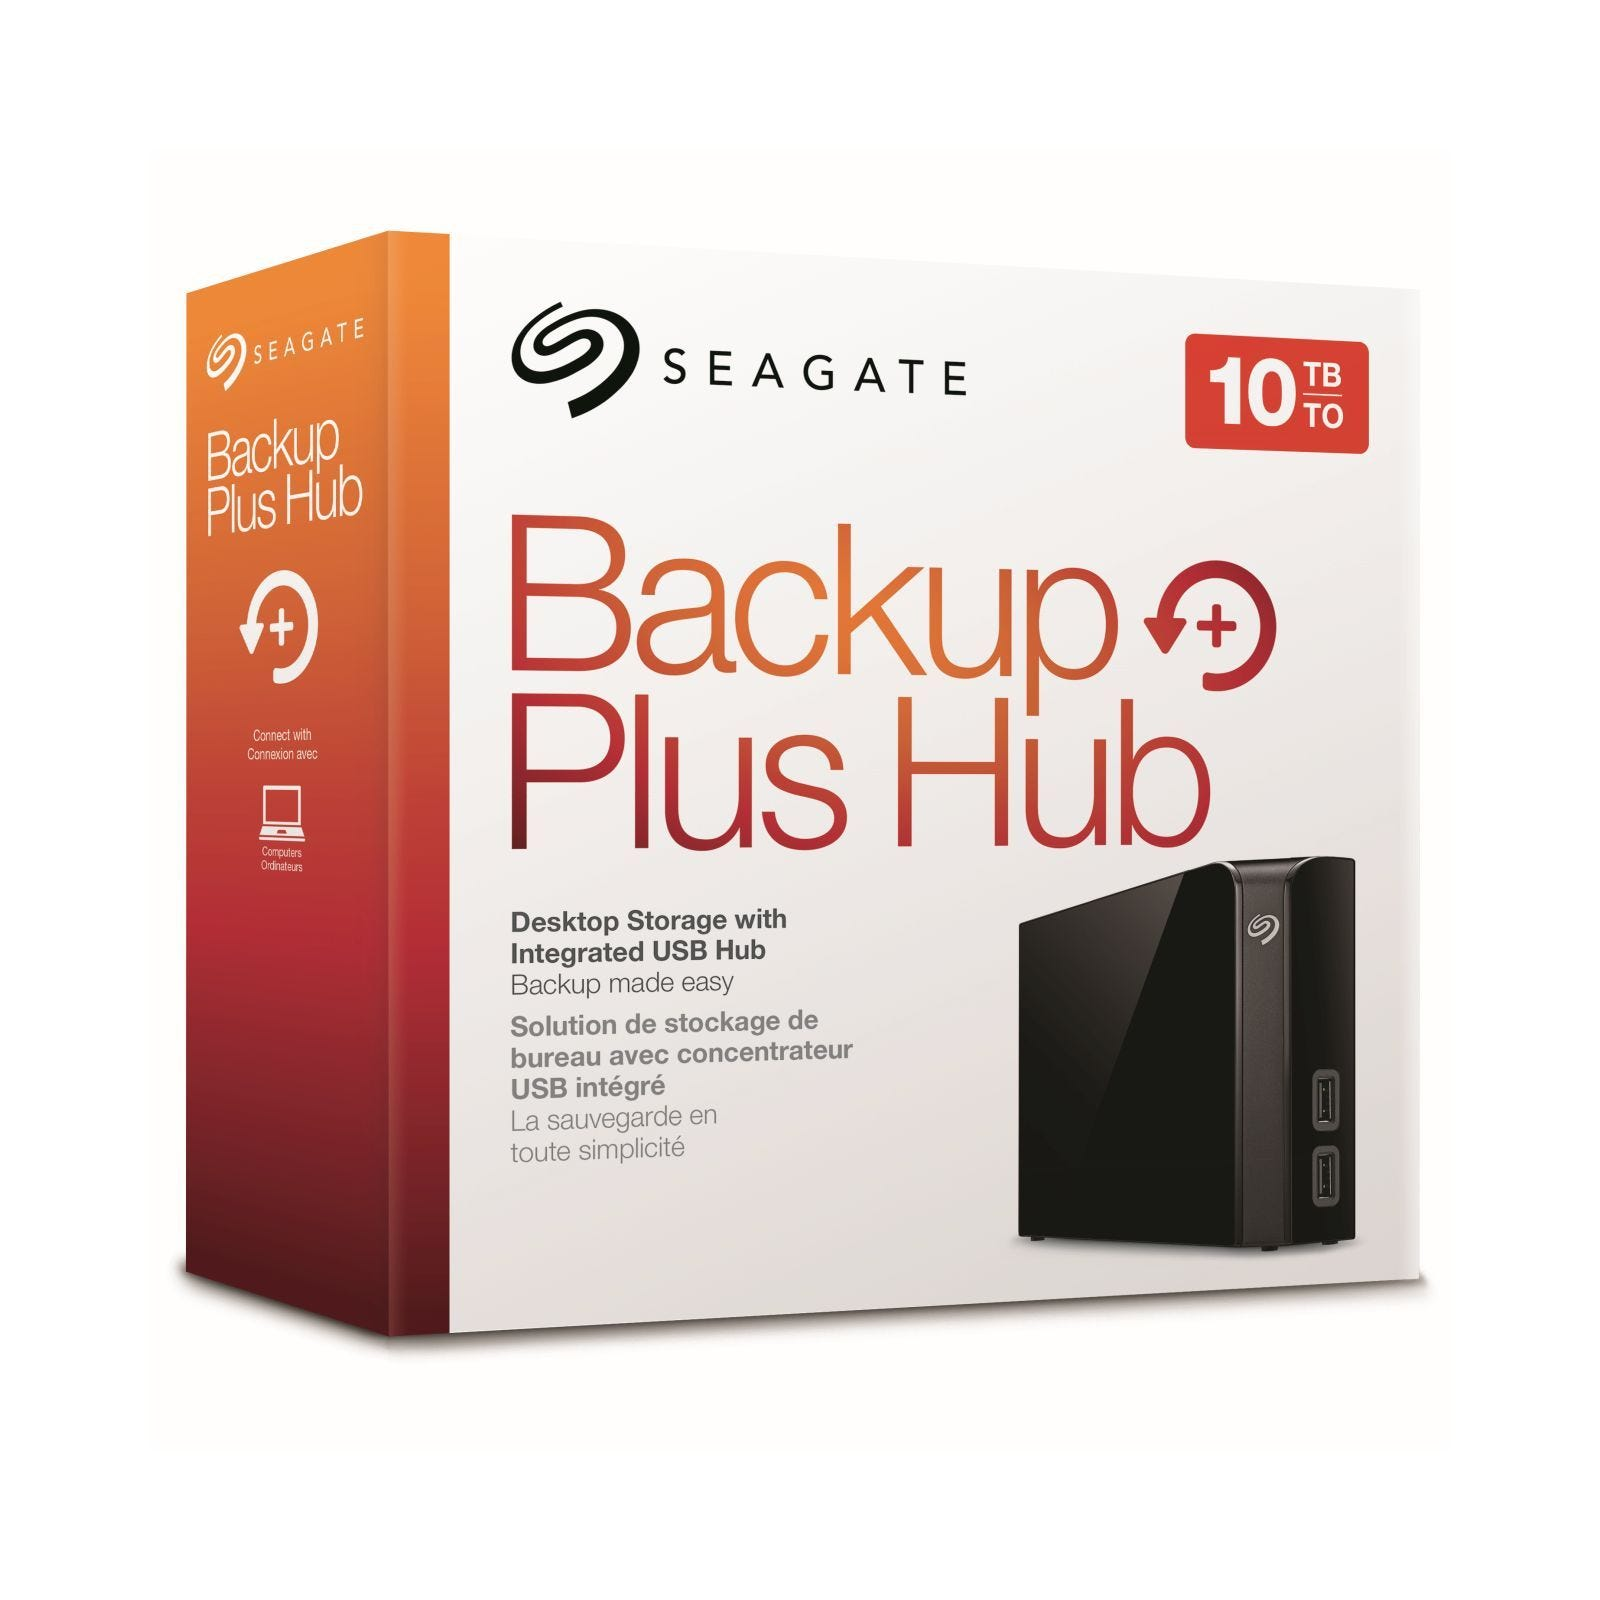 Disco duro externo Seagate 10tb Backup plus hub